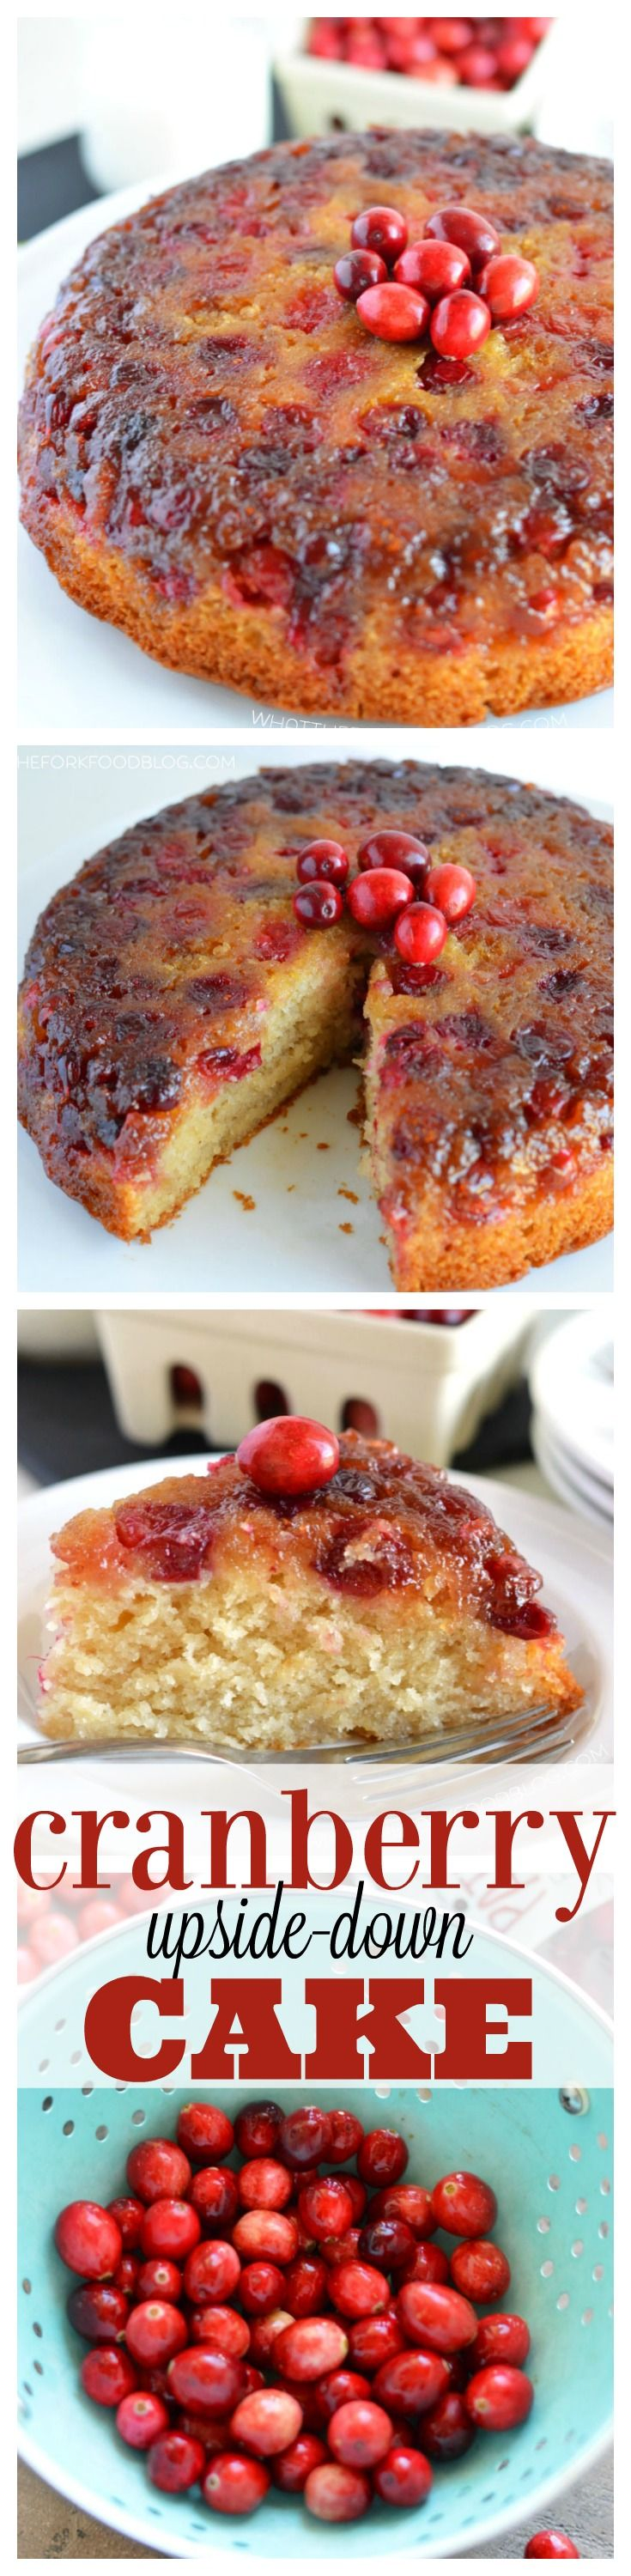 Cranberry Upside-Down Cake (gluten free and dairy free) from @whattheforkblog | whattheforkfoodblog.com